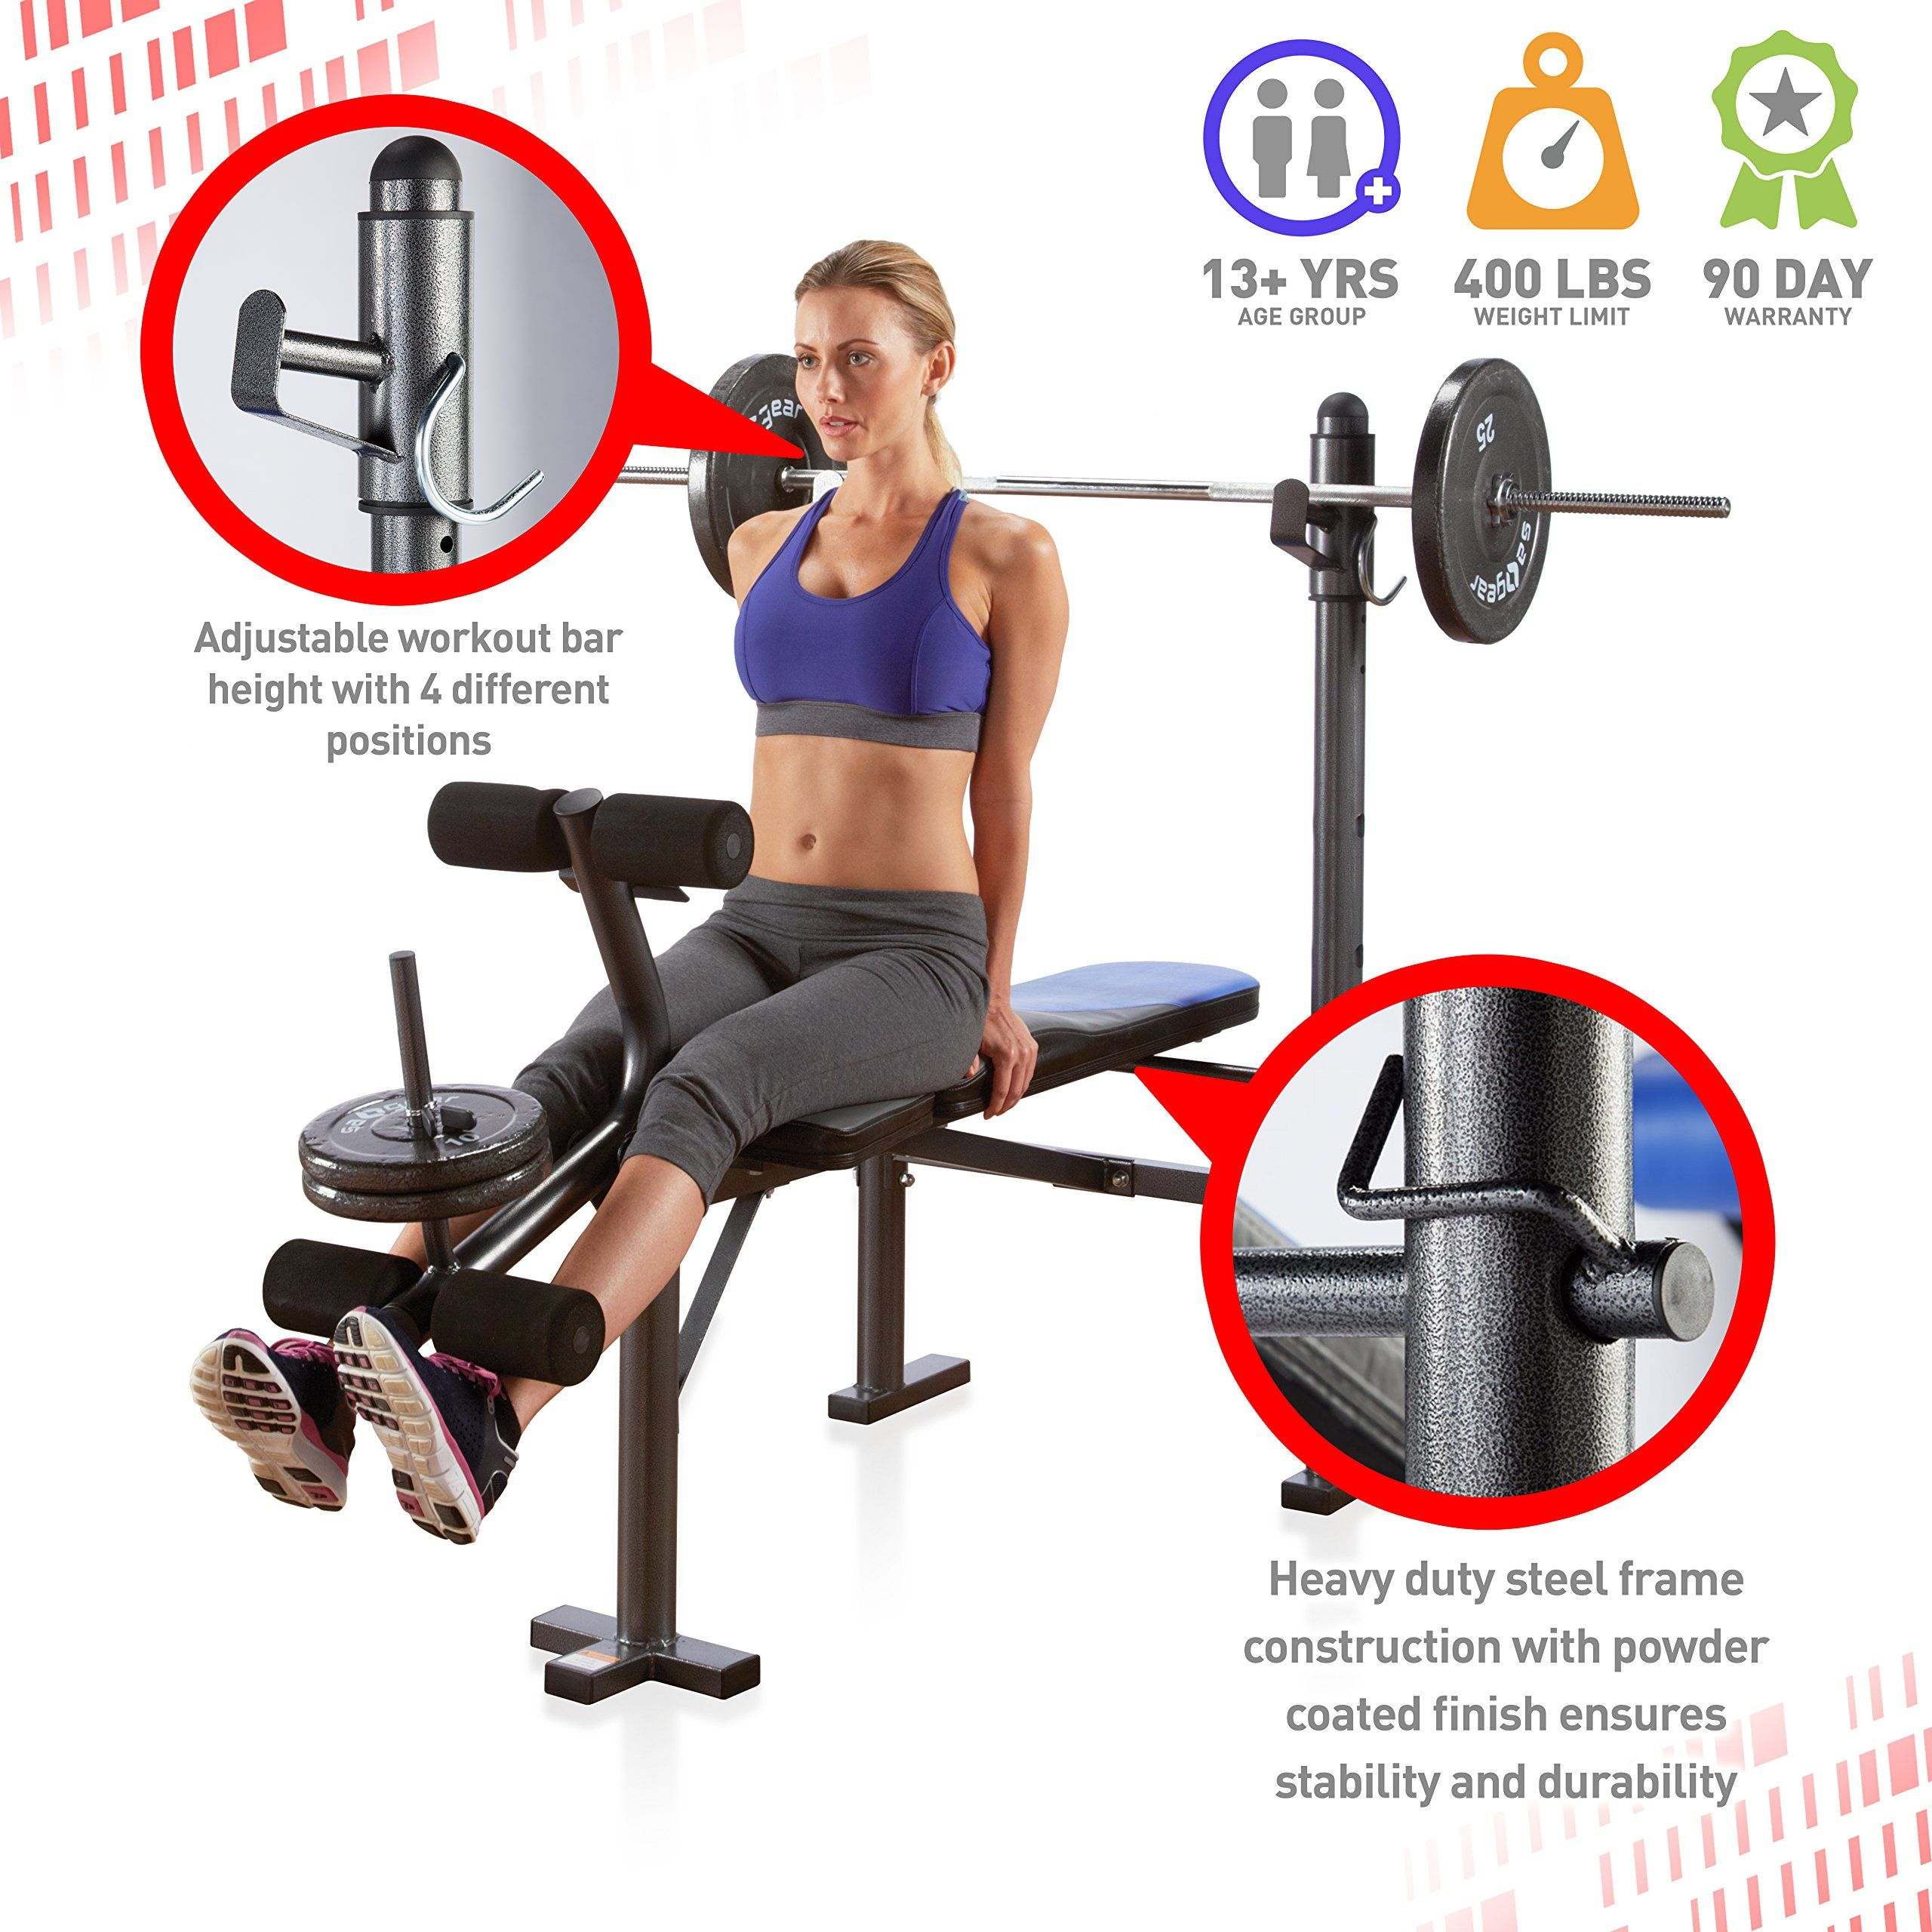 Pure Fitness Weight Training Workout Adjustable Multipurpose Utility Bench Blue Black You Could Discov Bar Workout Weight Benches Weight Training Workouts